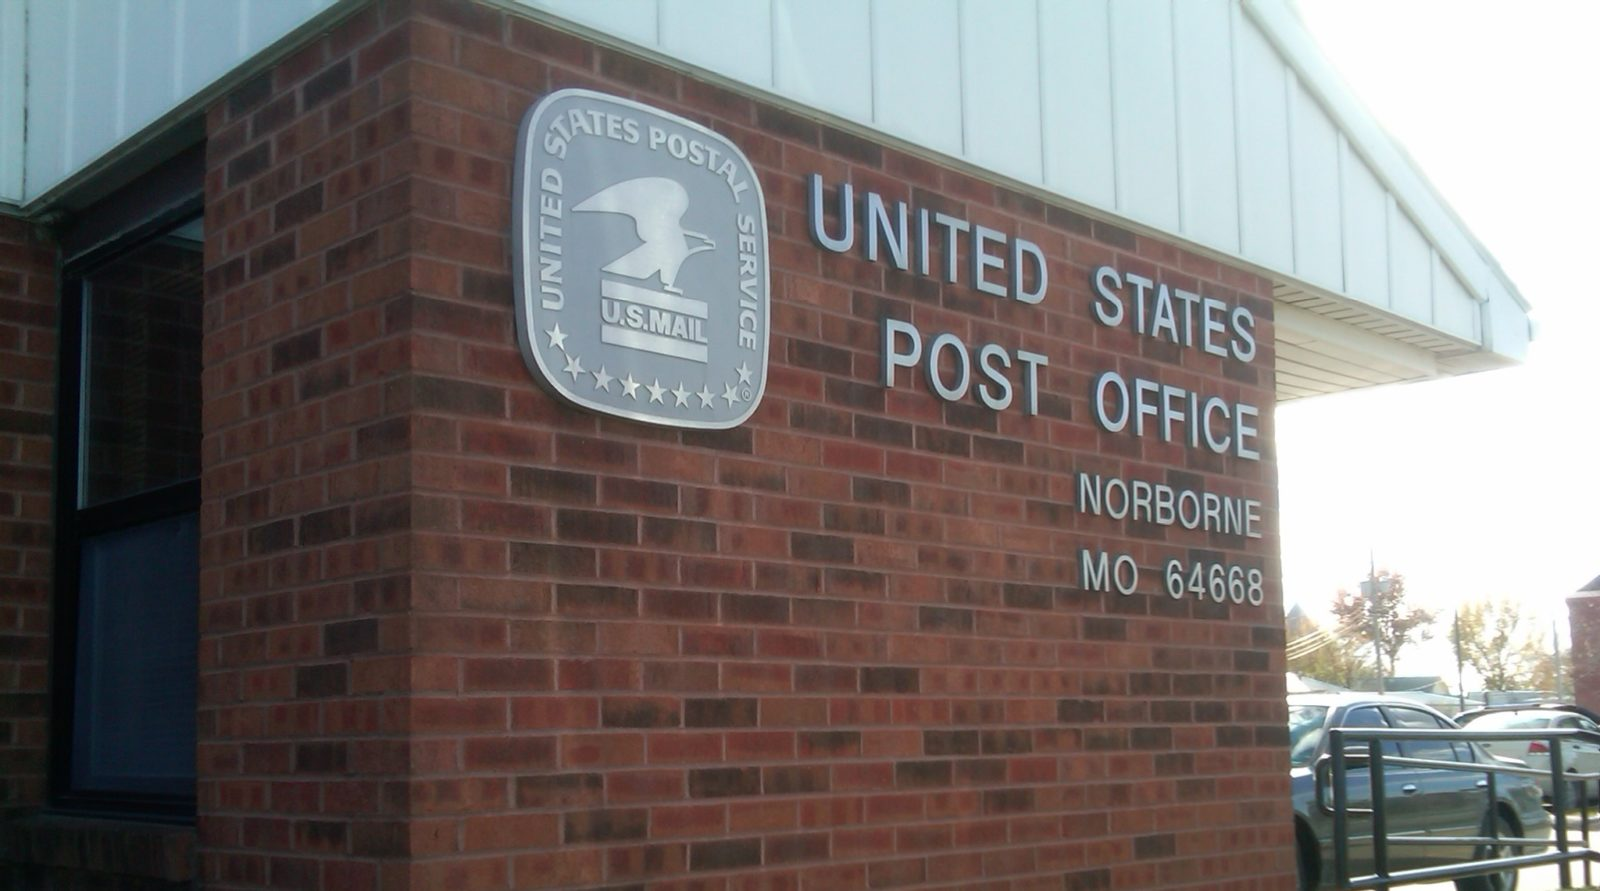 Residents Deal With Plan to Cut Post Office Hours